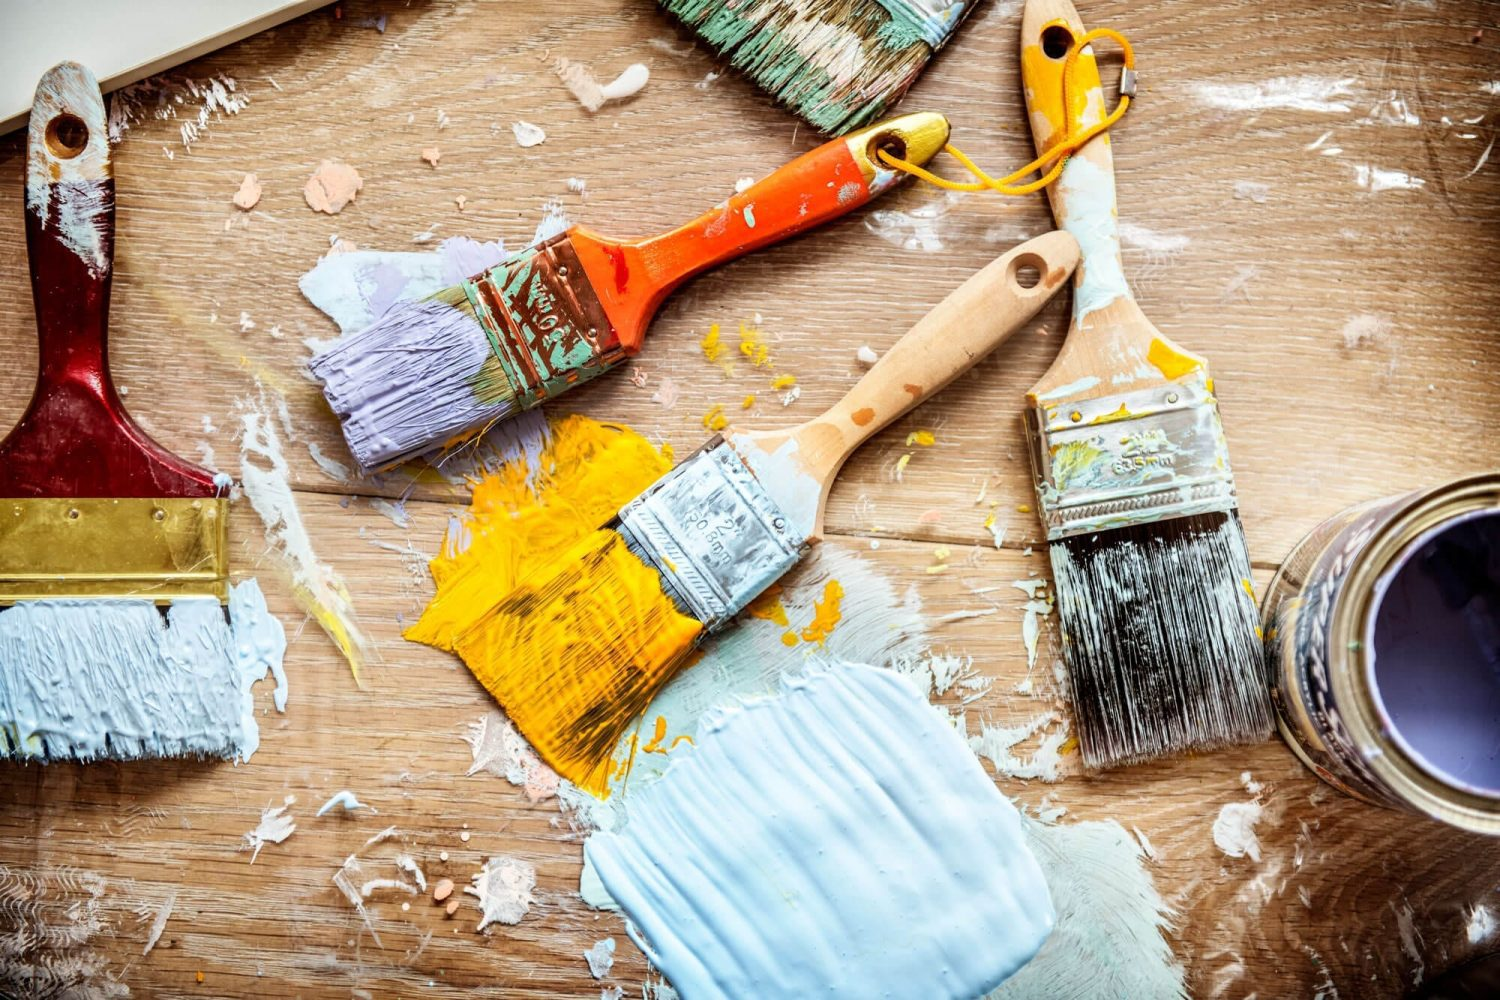 Paint Fumes from Home Improvements